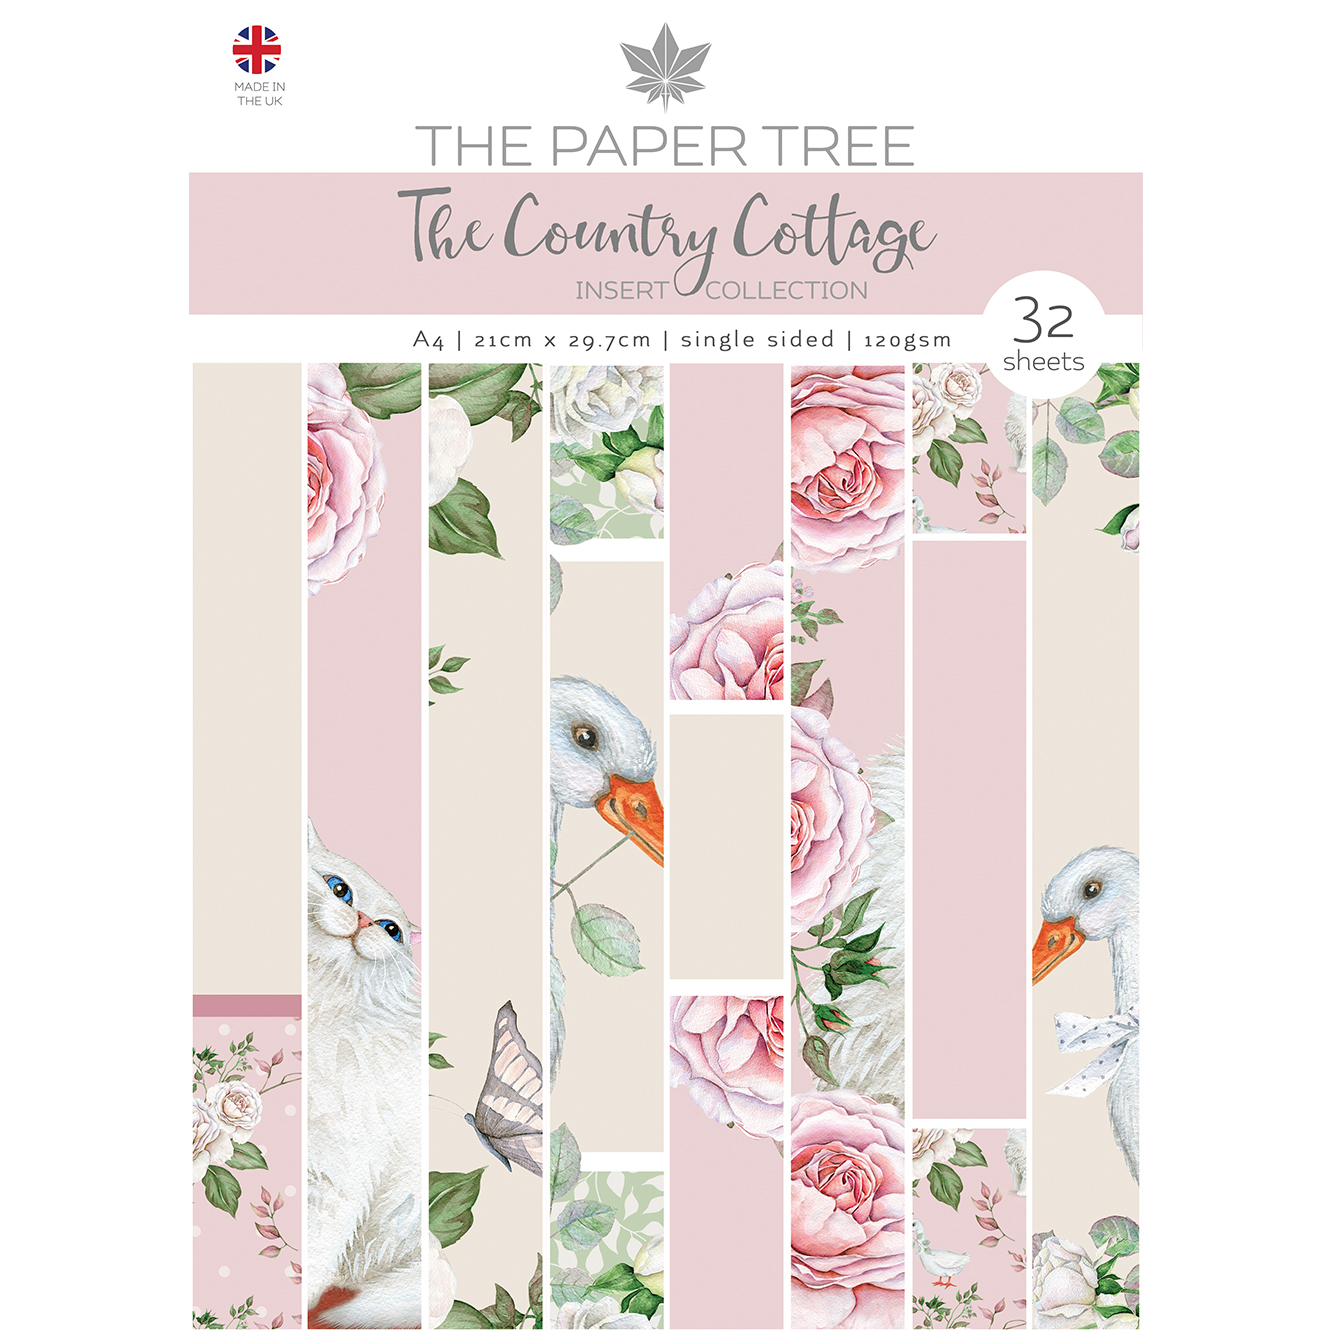 The Paper Tree The Country Cottage A4 Insert Collection